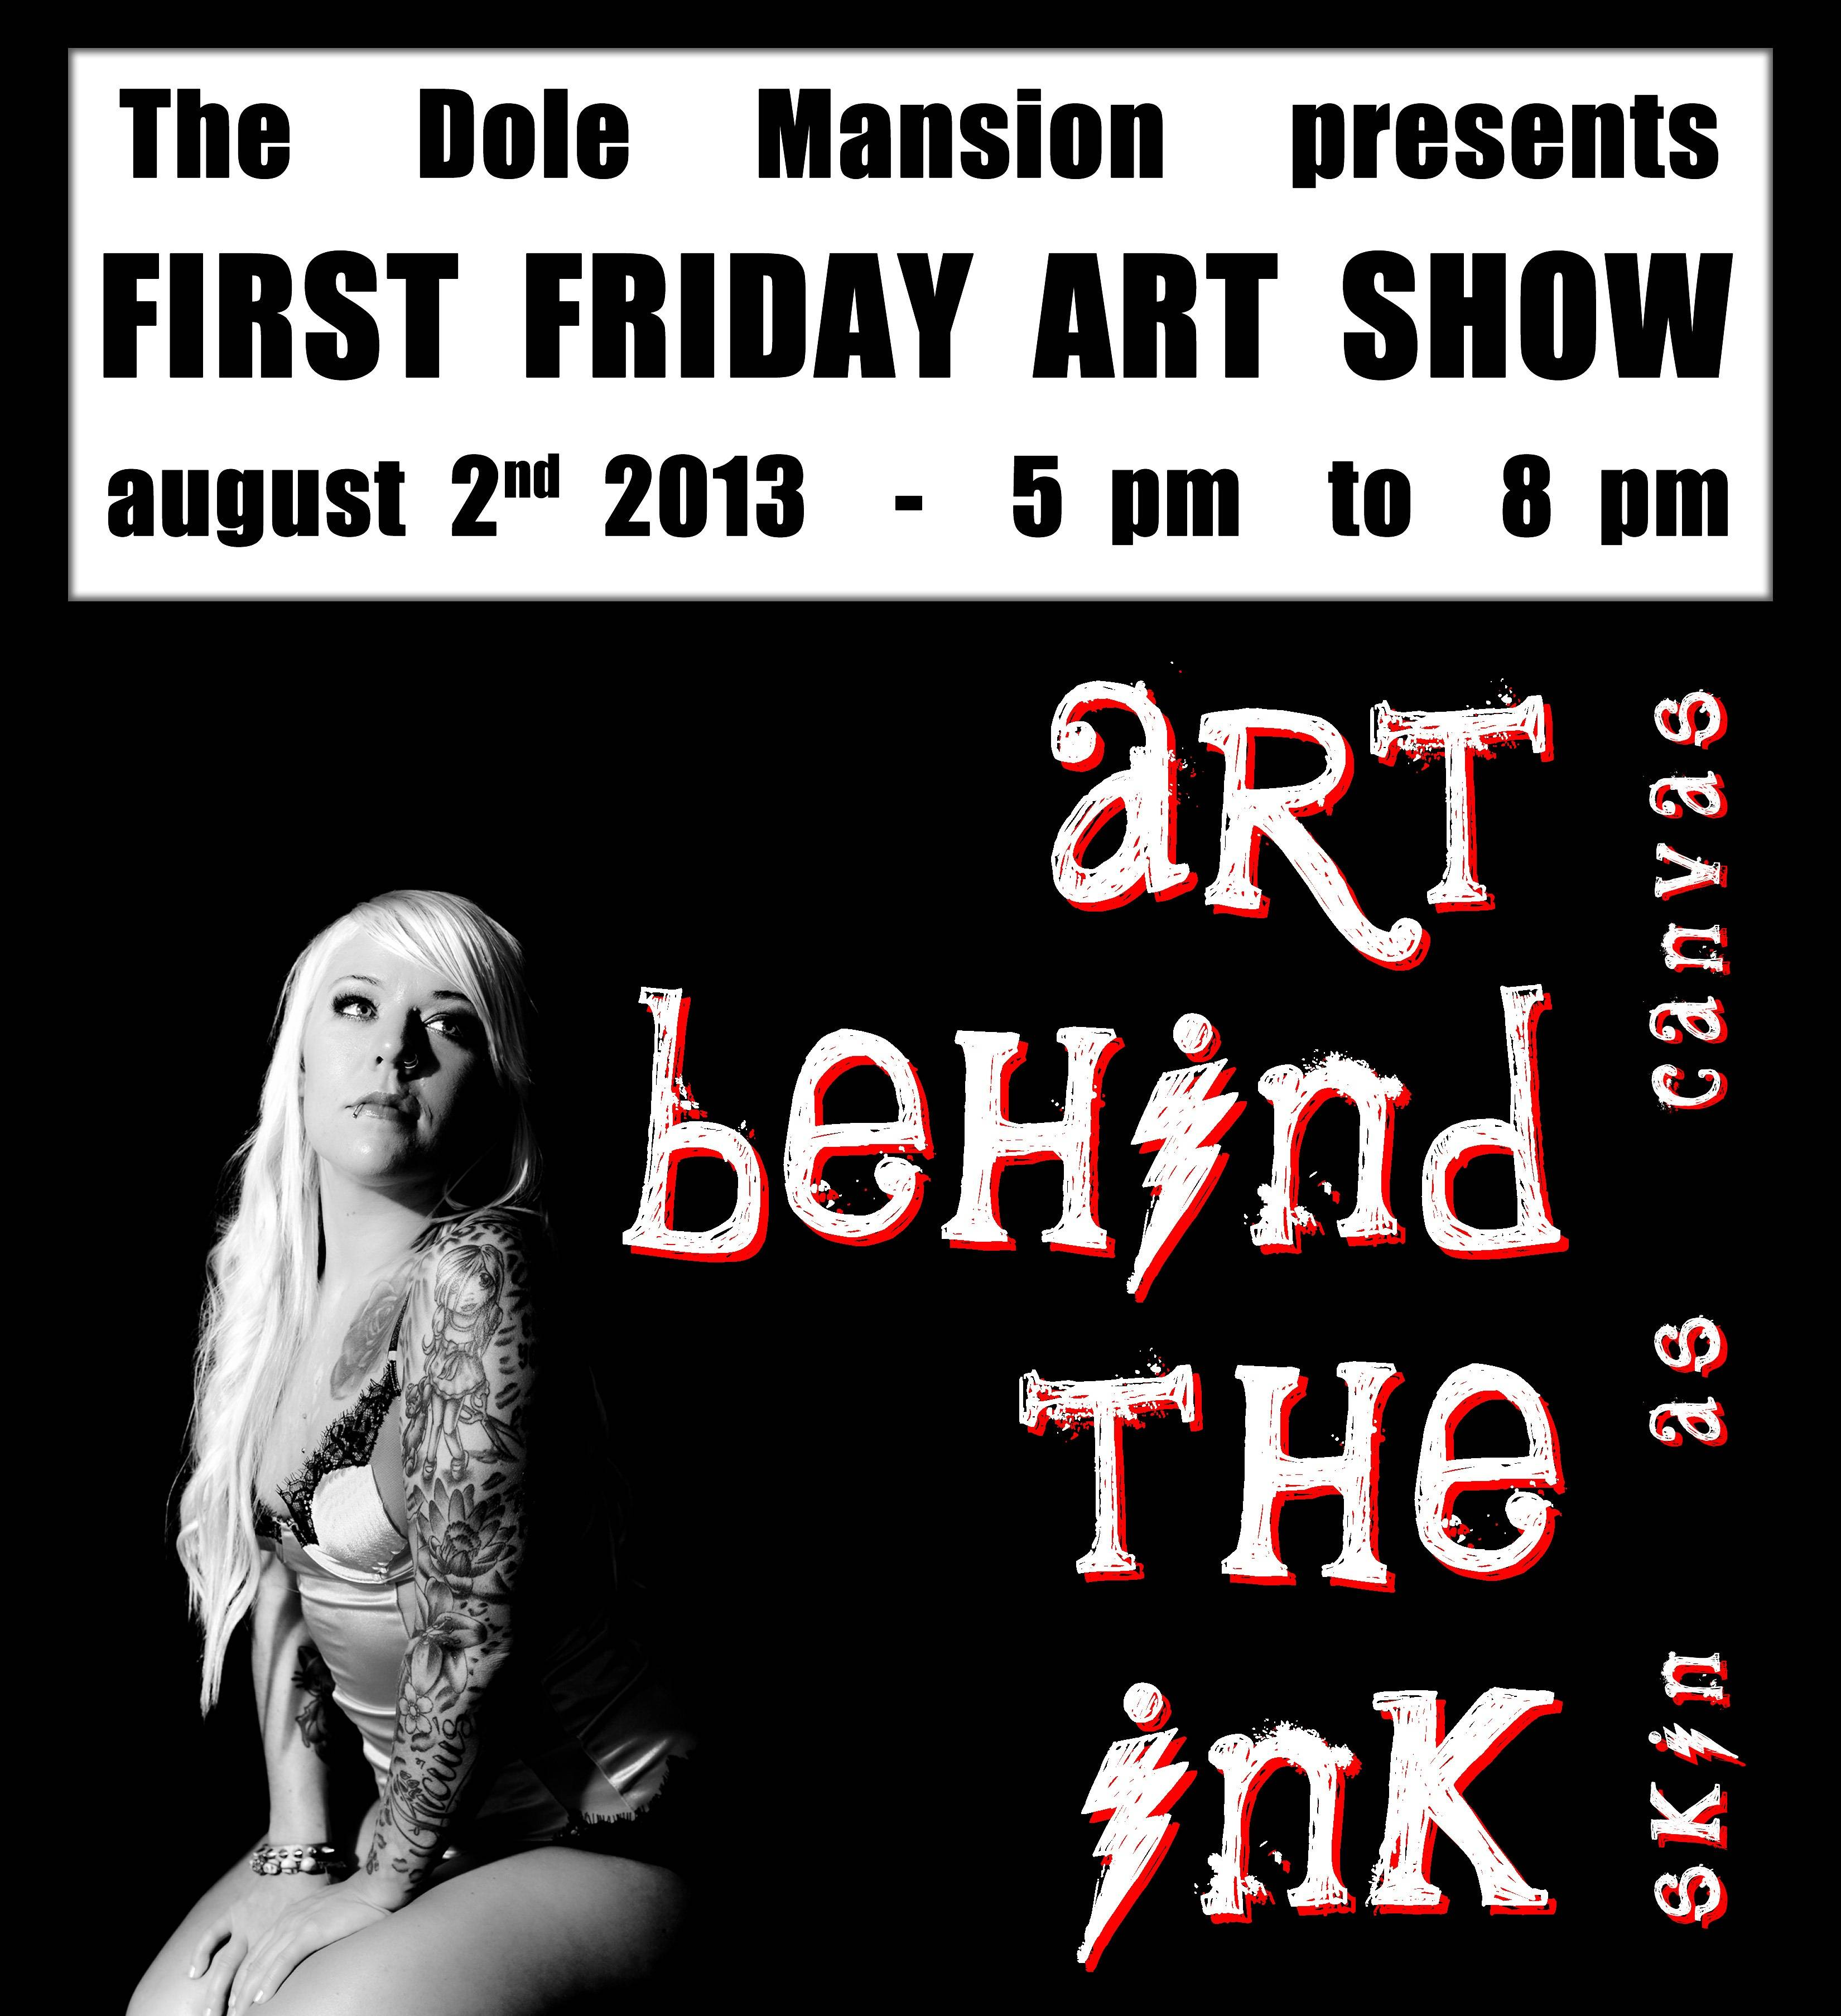 First Friday Art Show at the Dole Mansion on August 2nd! For more information visit www.LakesideLegacy.org.  Model: Collette Shriver  Photography: Melissa Smith of M.A.K. Photography Tattoo Artist: Joe Schaumann of Full Moon Tattoo Makeup, Tan, and Art Direction: Brandy Gisela & Carrie Mackay of Haute Bombshells Graphic Design: Jeff Sevener of J7arts